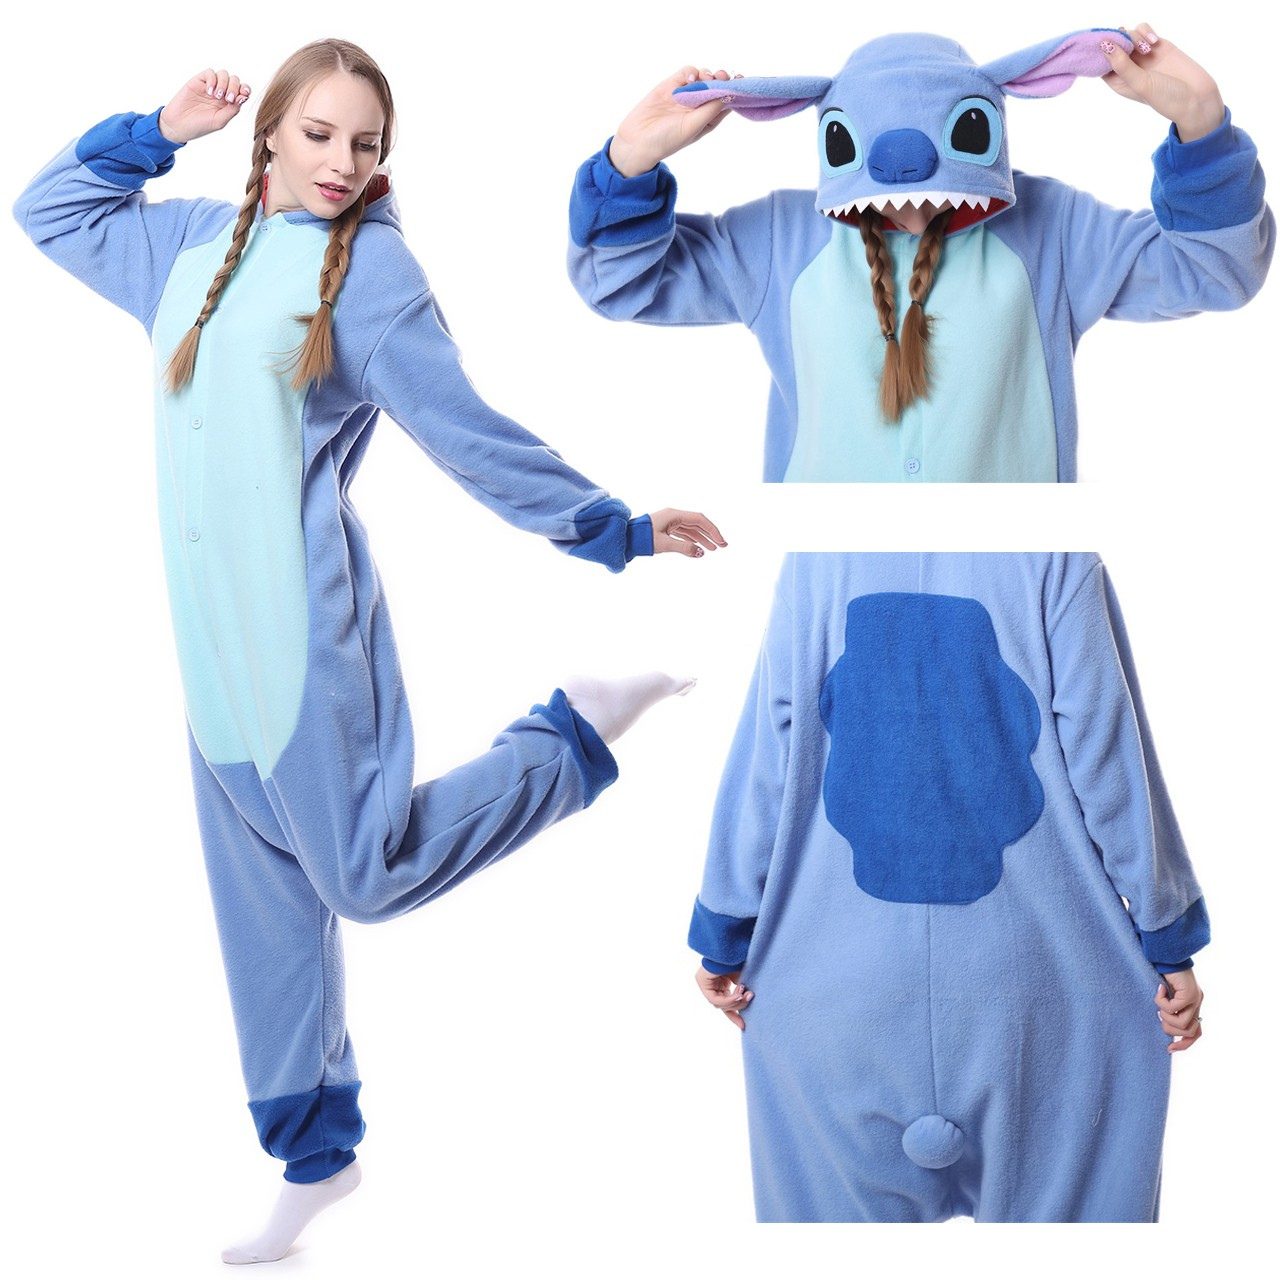 3852fbdc8 Disney Stitch Onesie, Disney Stitch Pajamas For Women & Men Online Sale